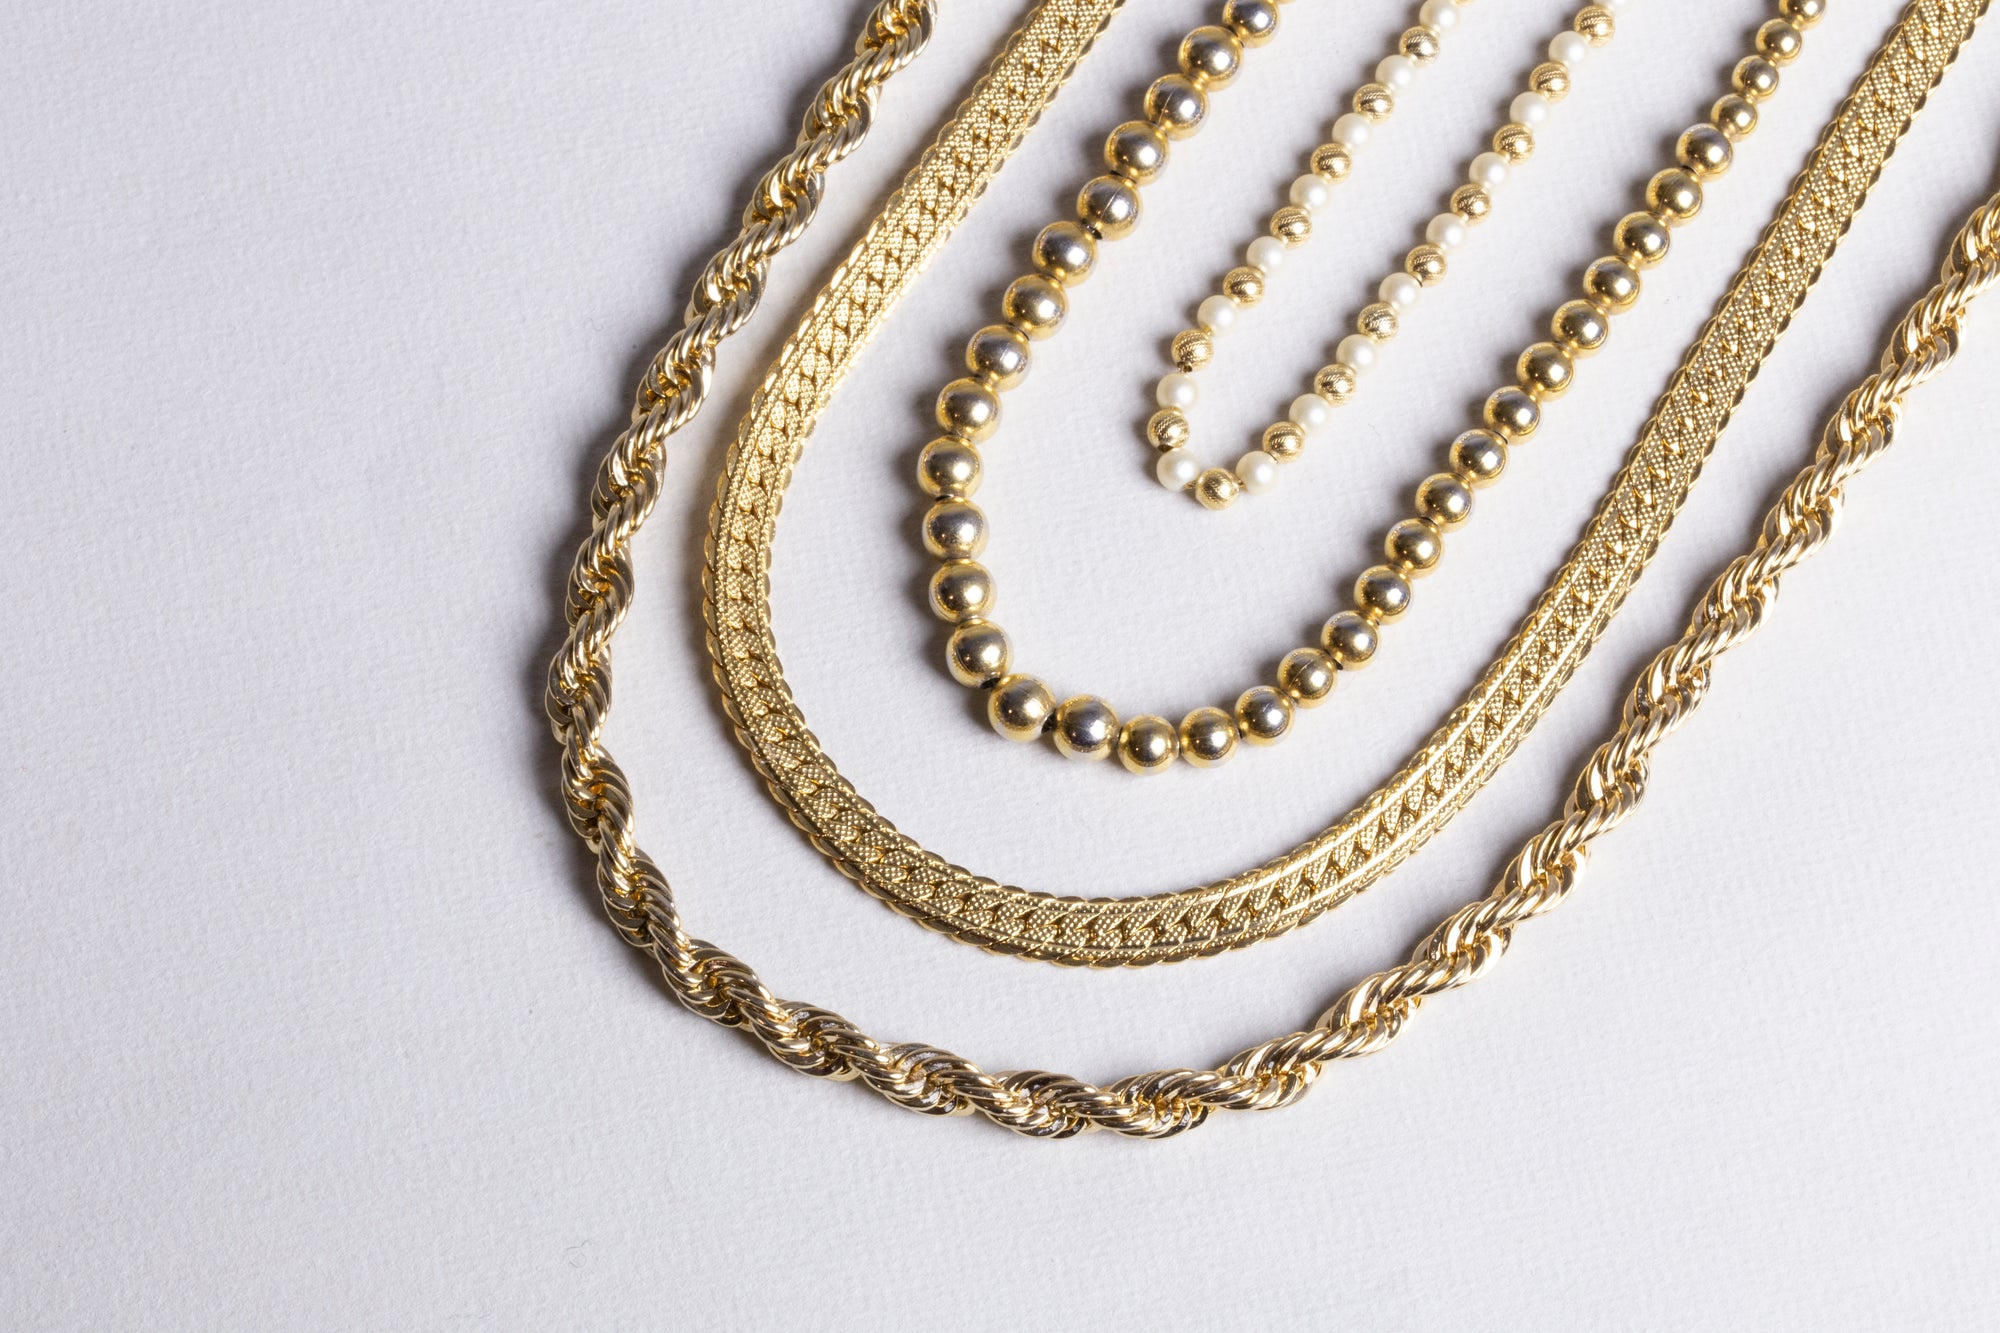 Set of Vintage Gold Necklace